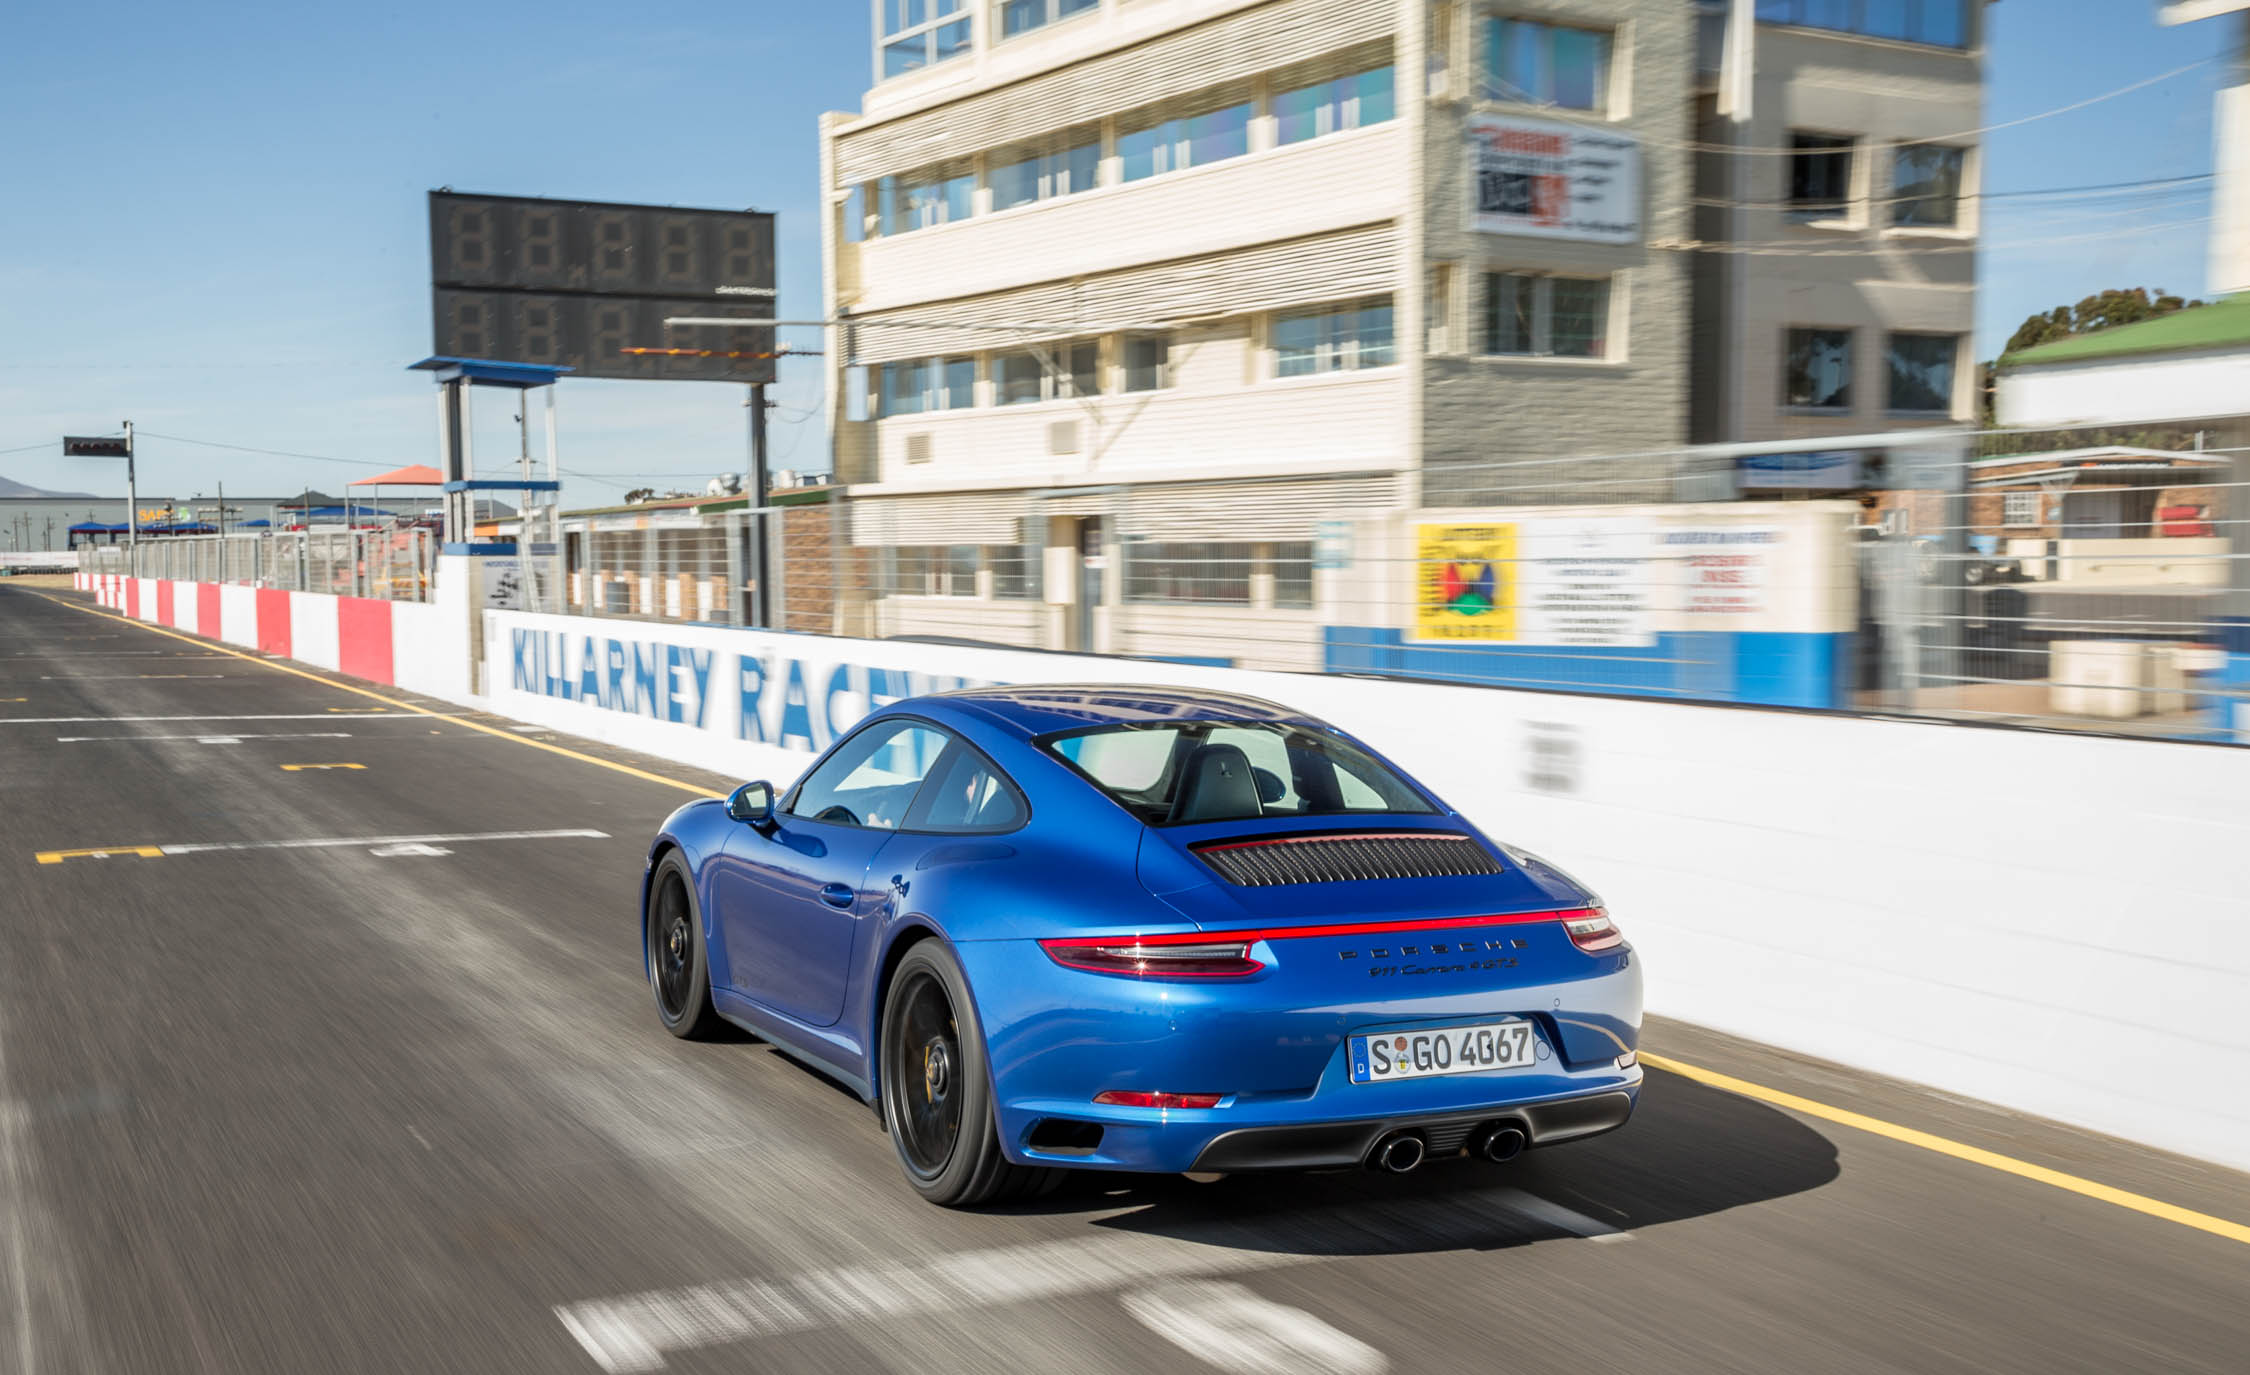 2017 Porsche 911 Carrera 4 GTS Coupe Blue Metallic Rear View (Photo 18 of 97)